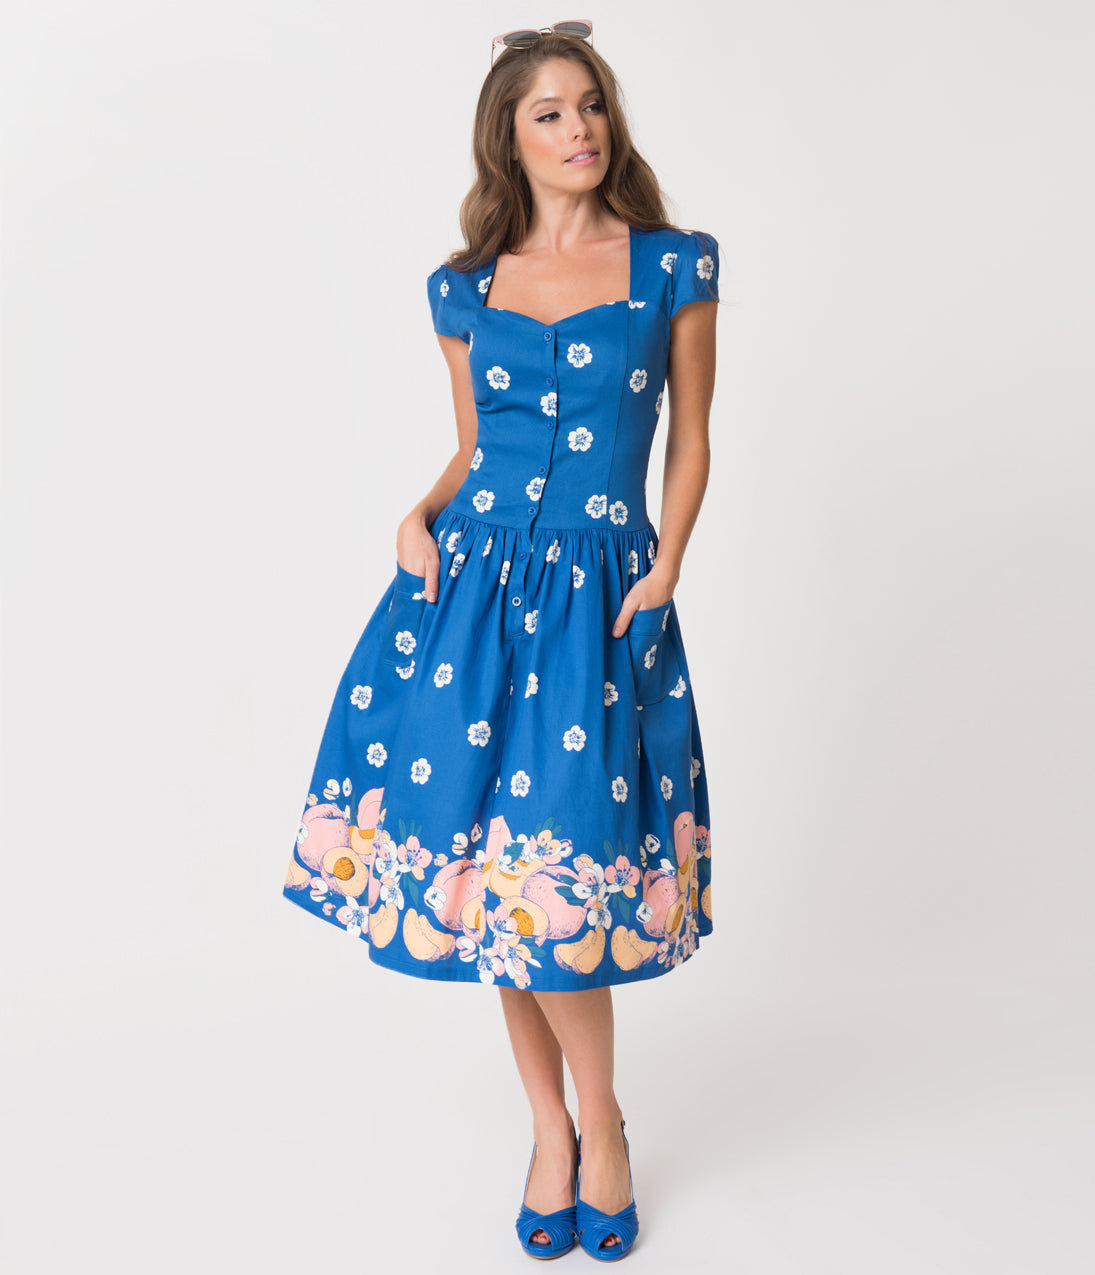 1940s Style Dresses | 40s Dress, Swing Dress Banned Blue  White Tropical Floral Tutti Fruity Cotton Swing Dress $71.00 AT vintagedancer.com